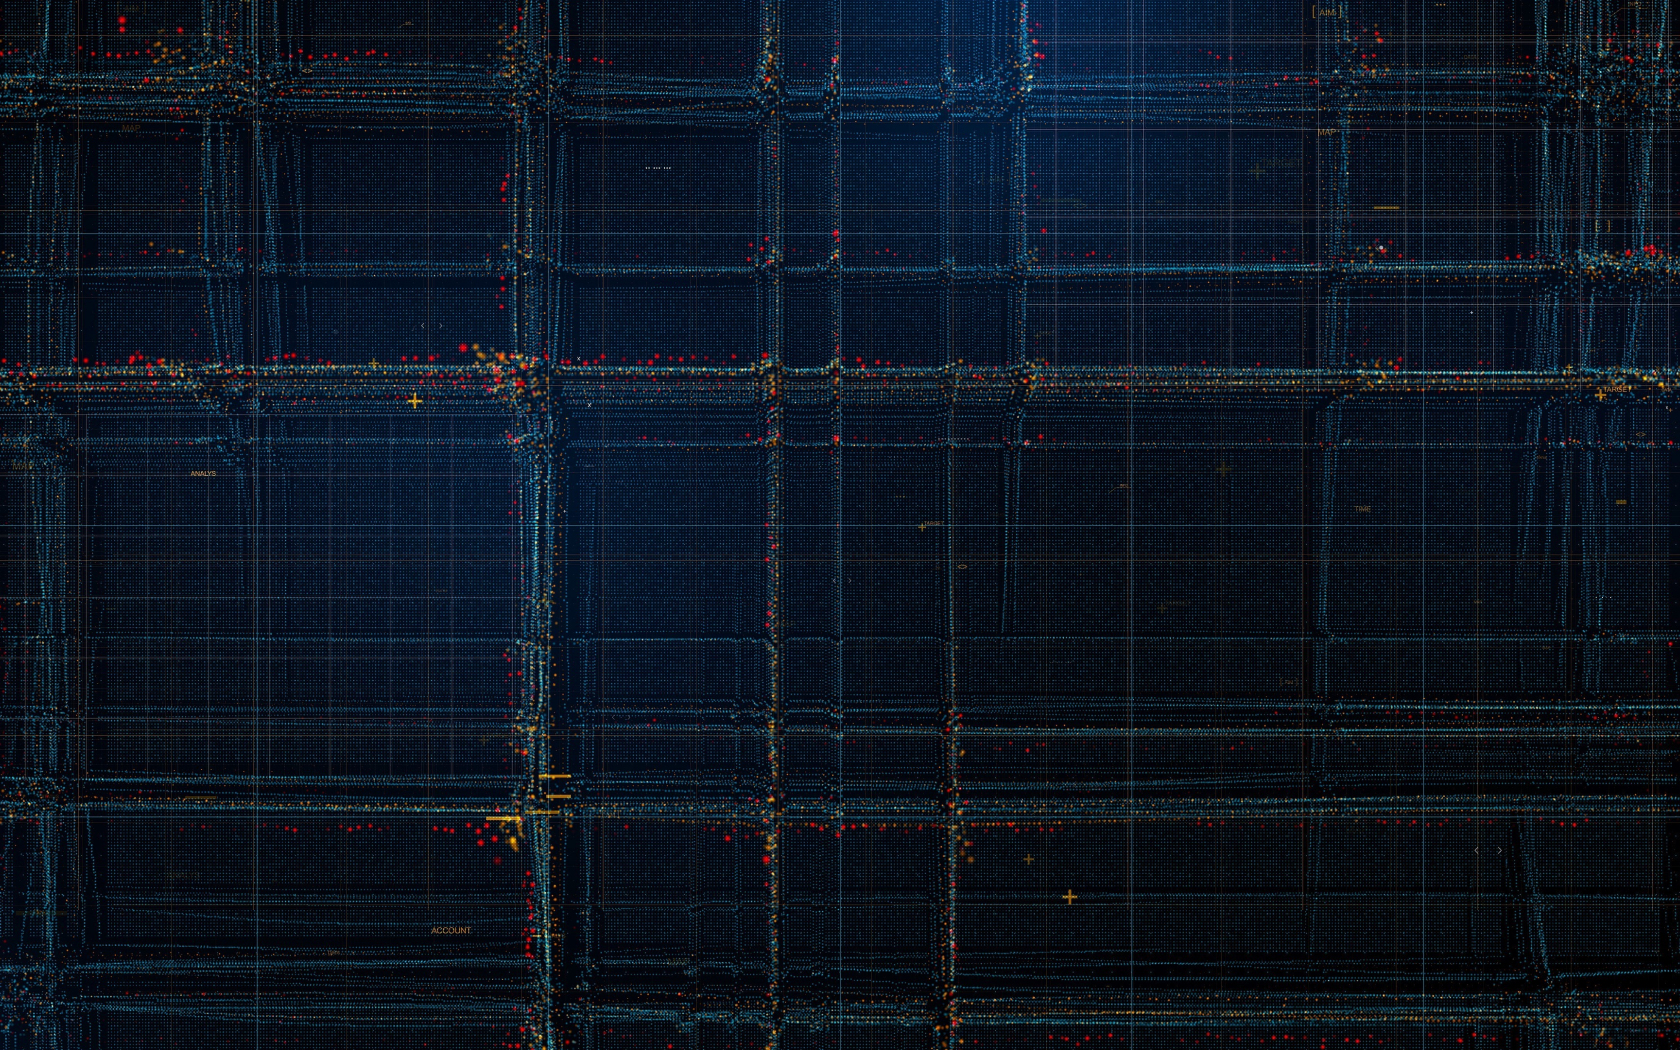 Particles, structure, lines, pattern, dark, 1680x1050 wallpaper